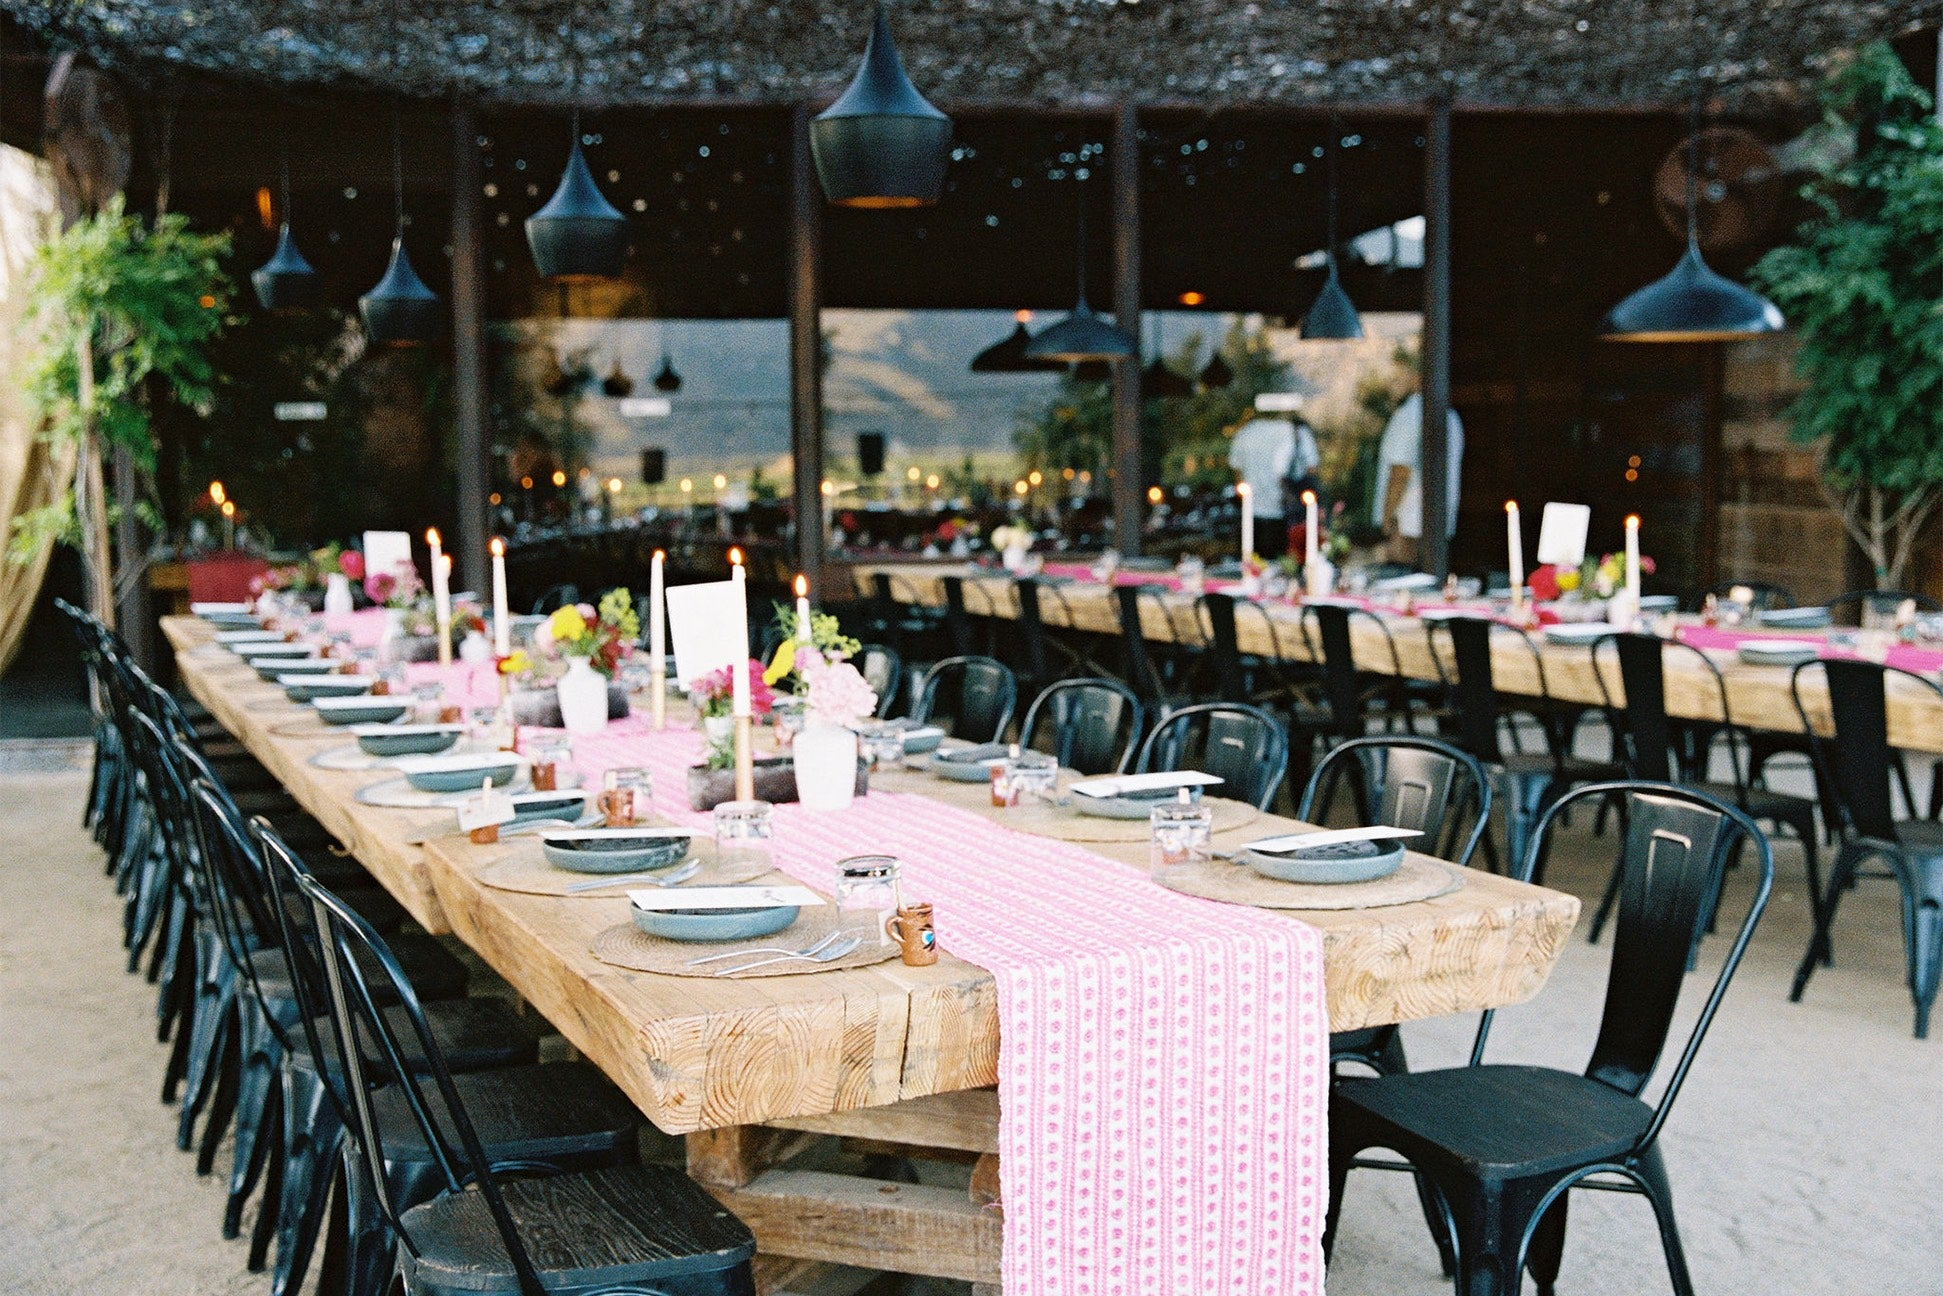 Table with hot pink runner